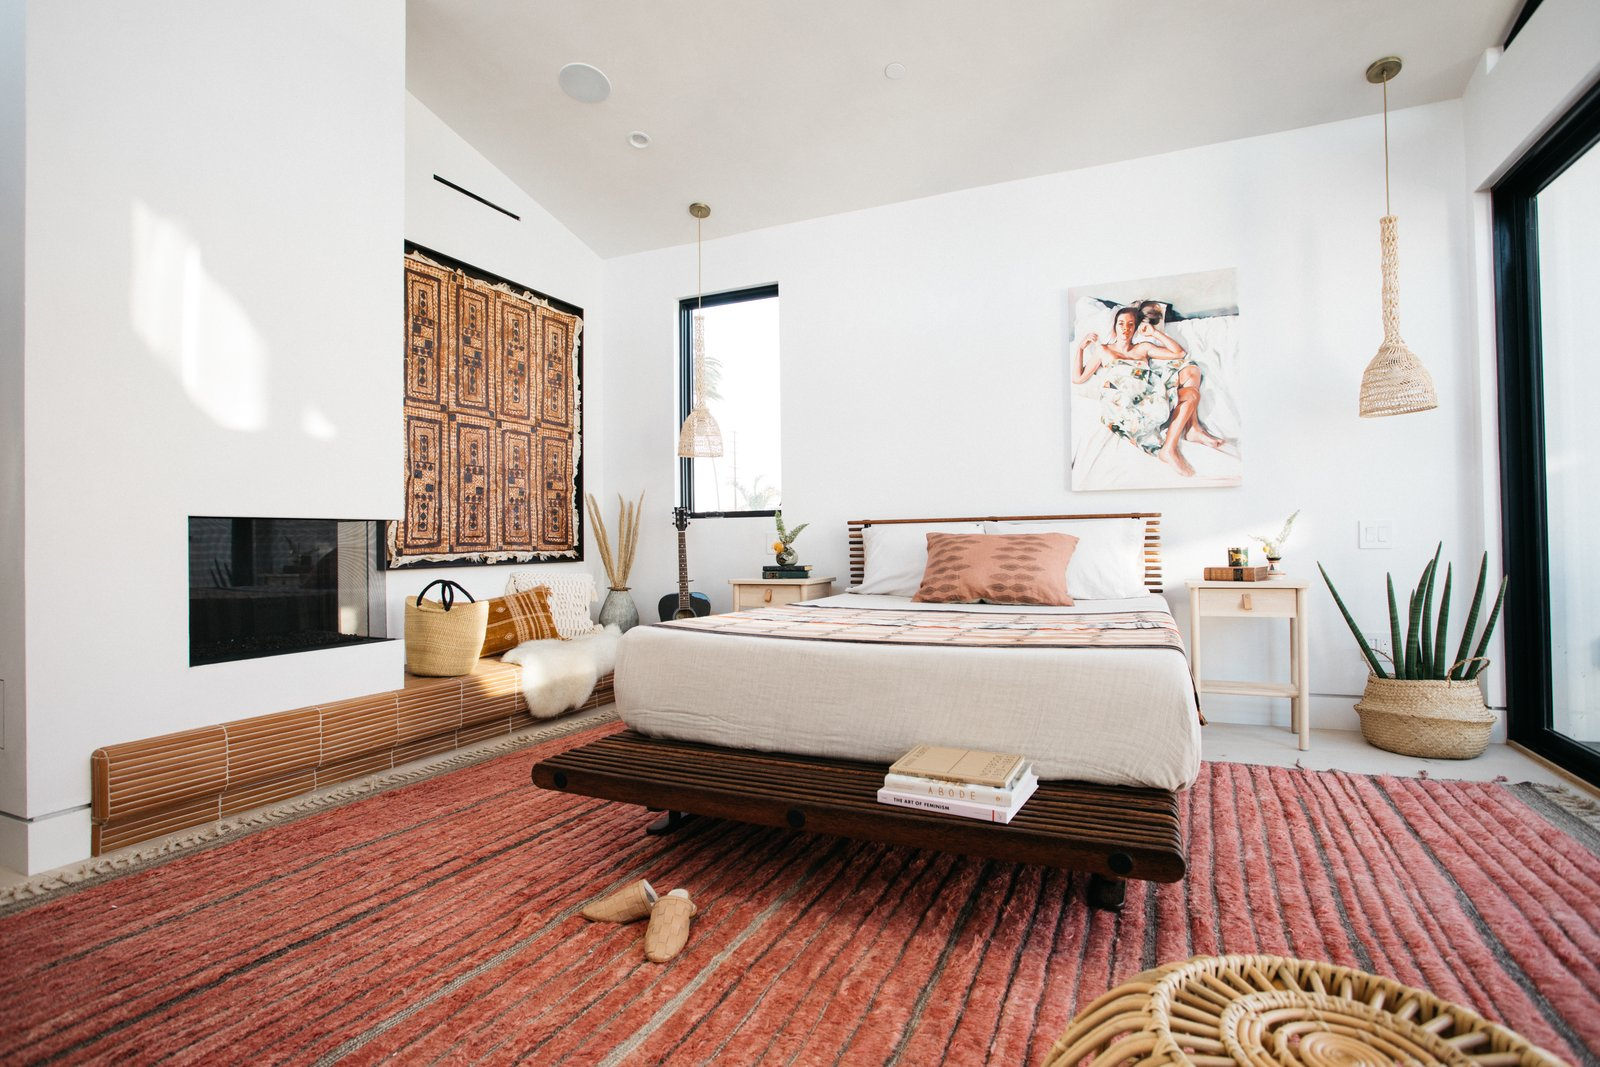 Bedroom, Rug Floor, Night Stands, Porcelain Tile Floor, Recessed Lighting, Pendant Lighting, Bed, and Terra-cotta Tile Floor Fireplace in the master bedroom offers a cozy respite for its occupants during winter.   Milwood Residence by Mayes Office